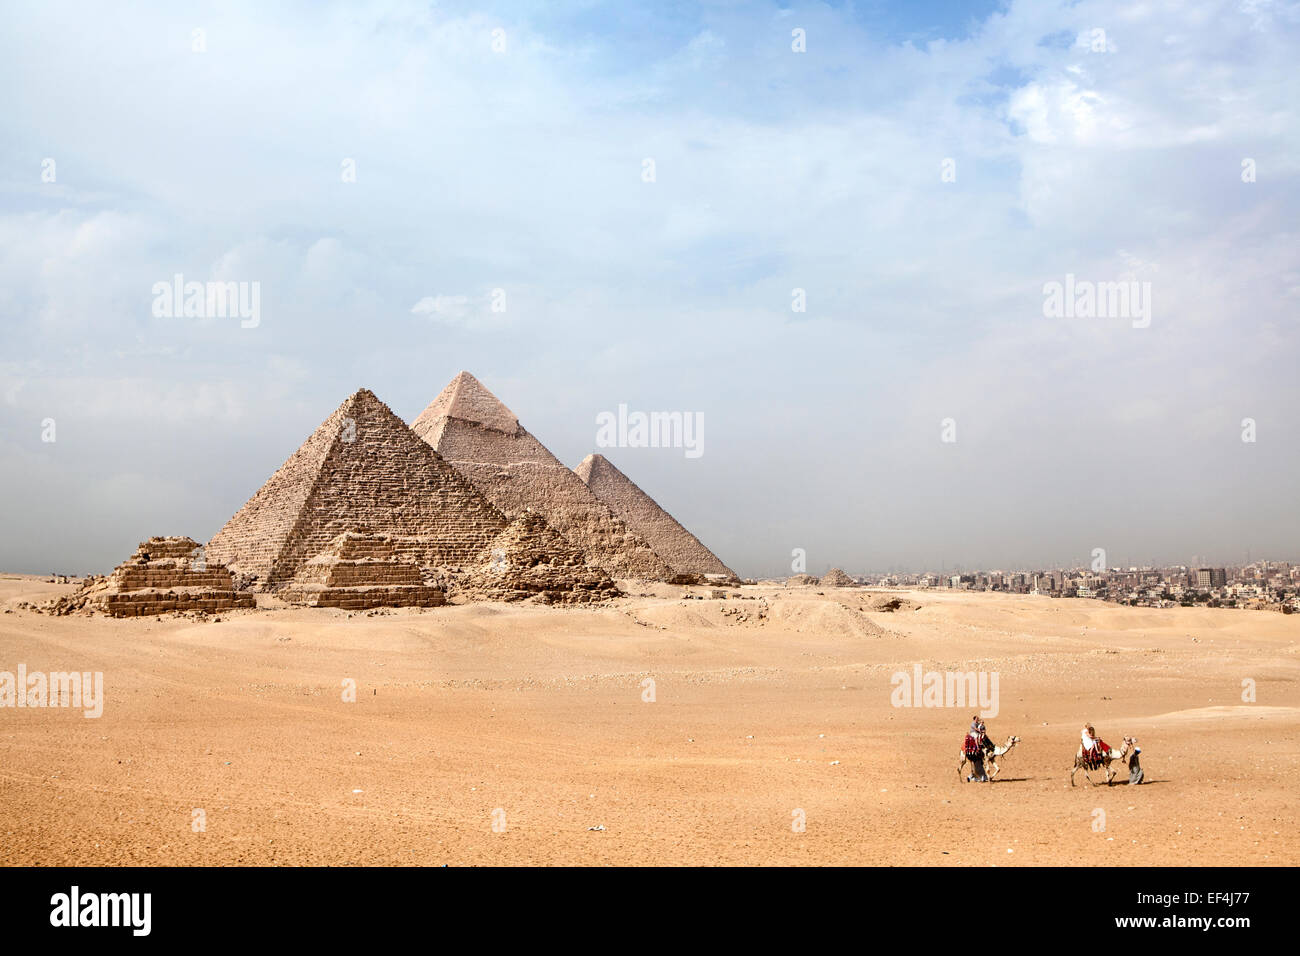 pyramids at Giza with camel and tourists walking past - Stock Image